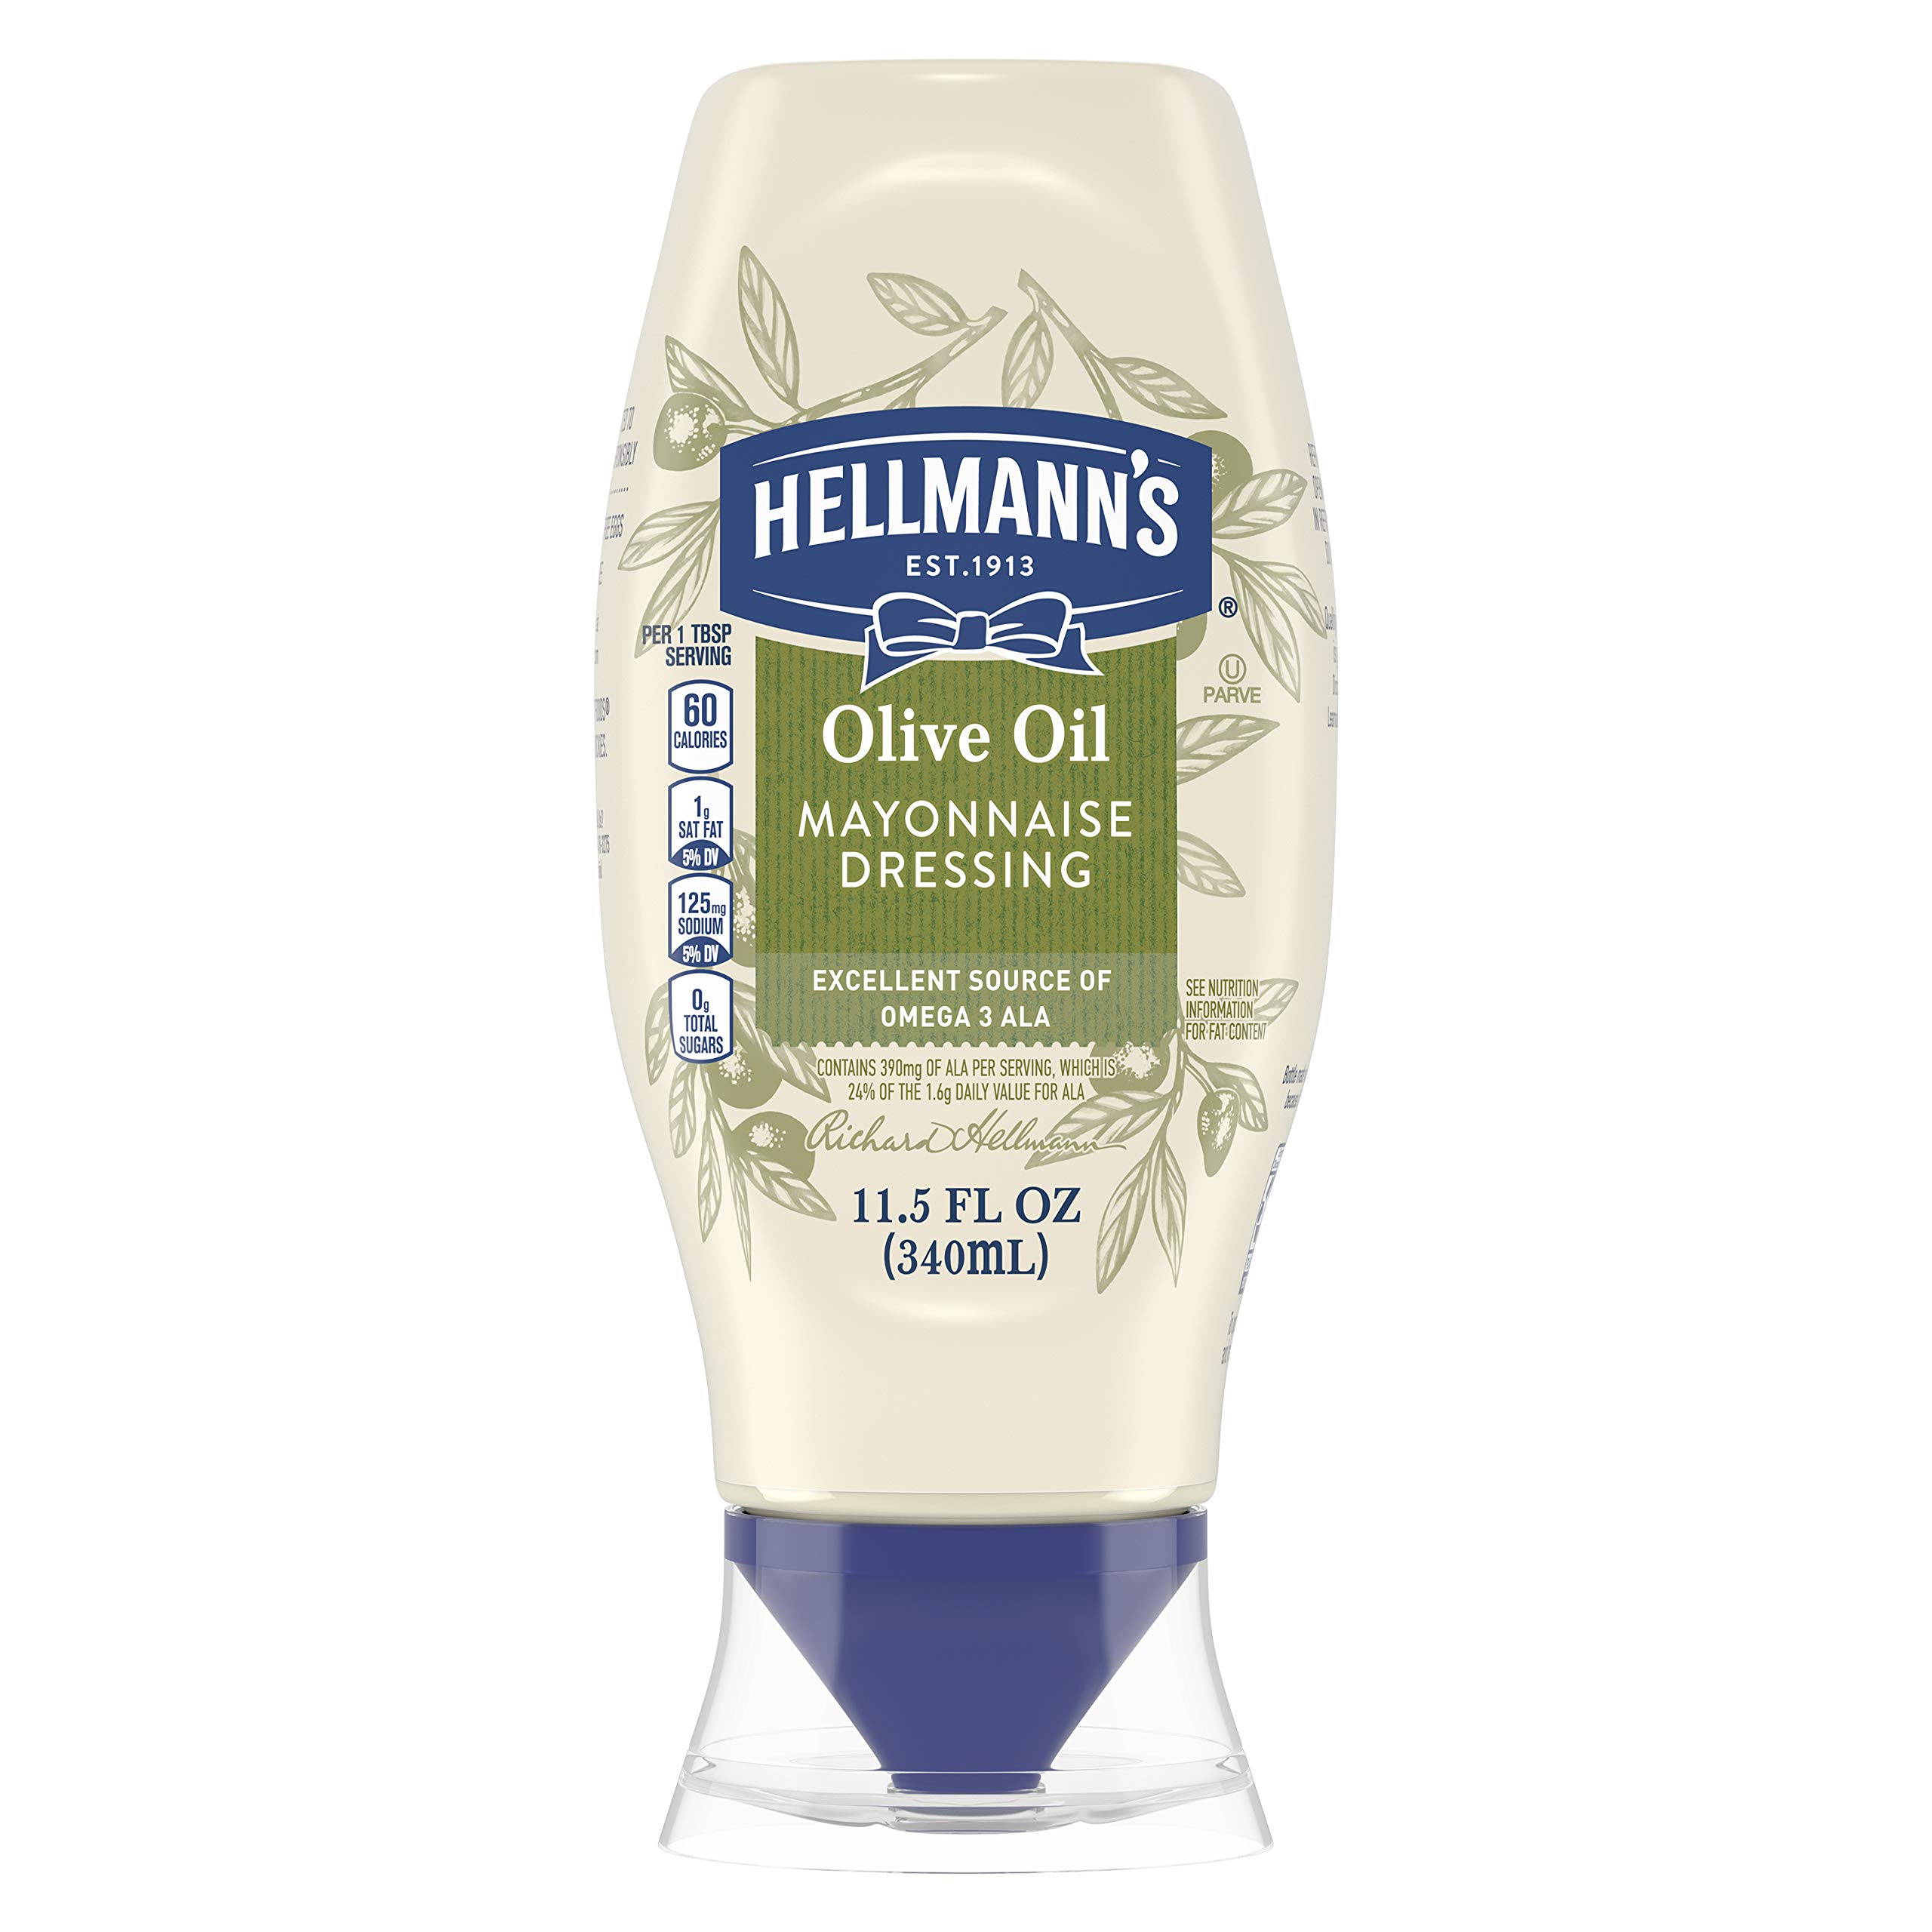 Hellmann's Mayonnaise Dressing for Delicious Sandwiches with Olive Oil Squeeze Mayo Rich in Omega 3-ALA 11.5 oz